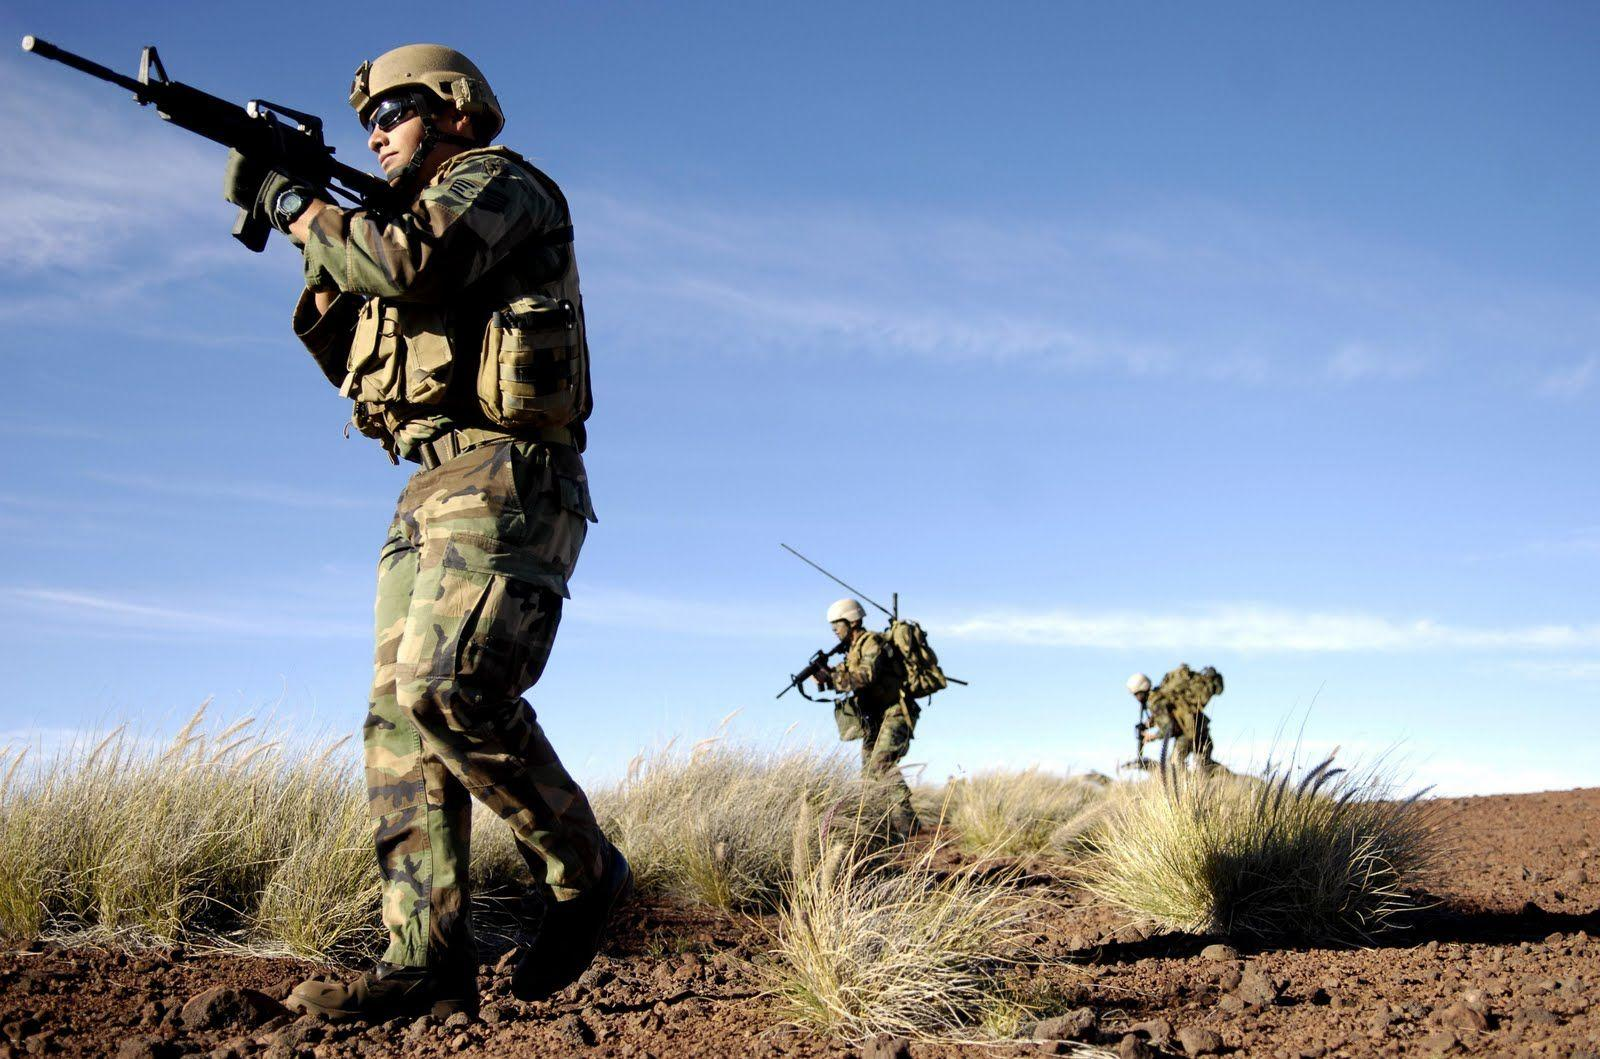 Indian Army HD Wallpapers For Mobile